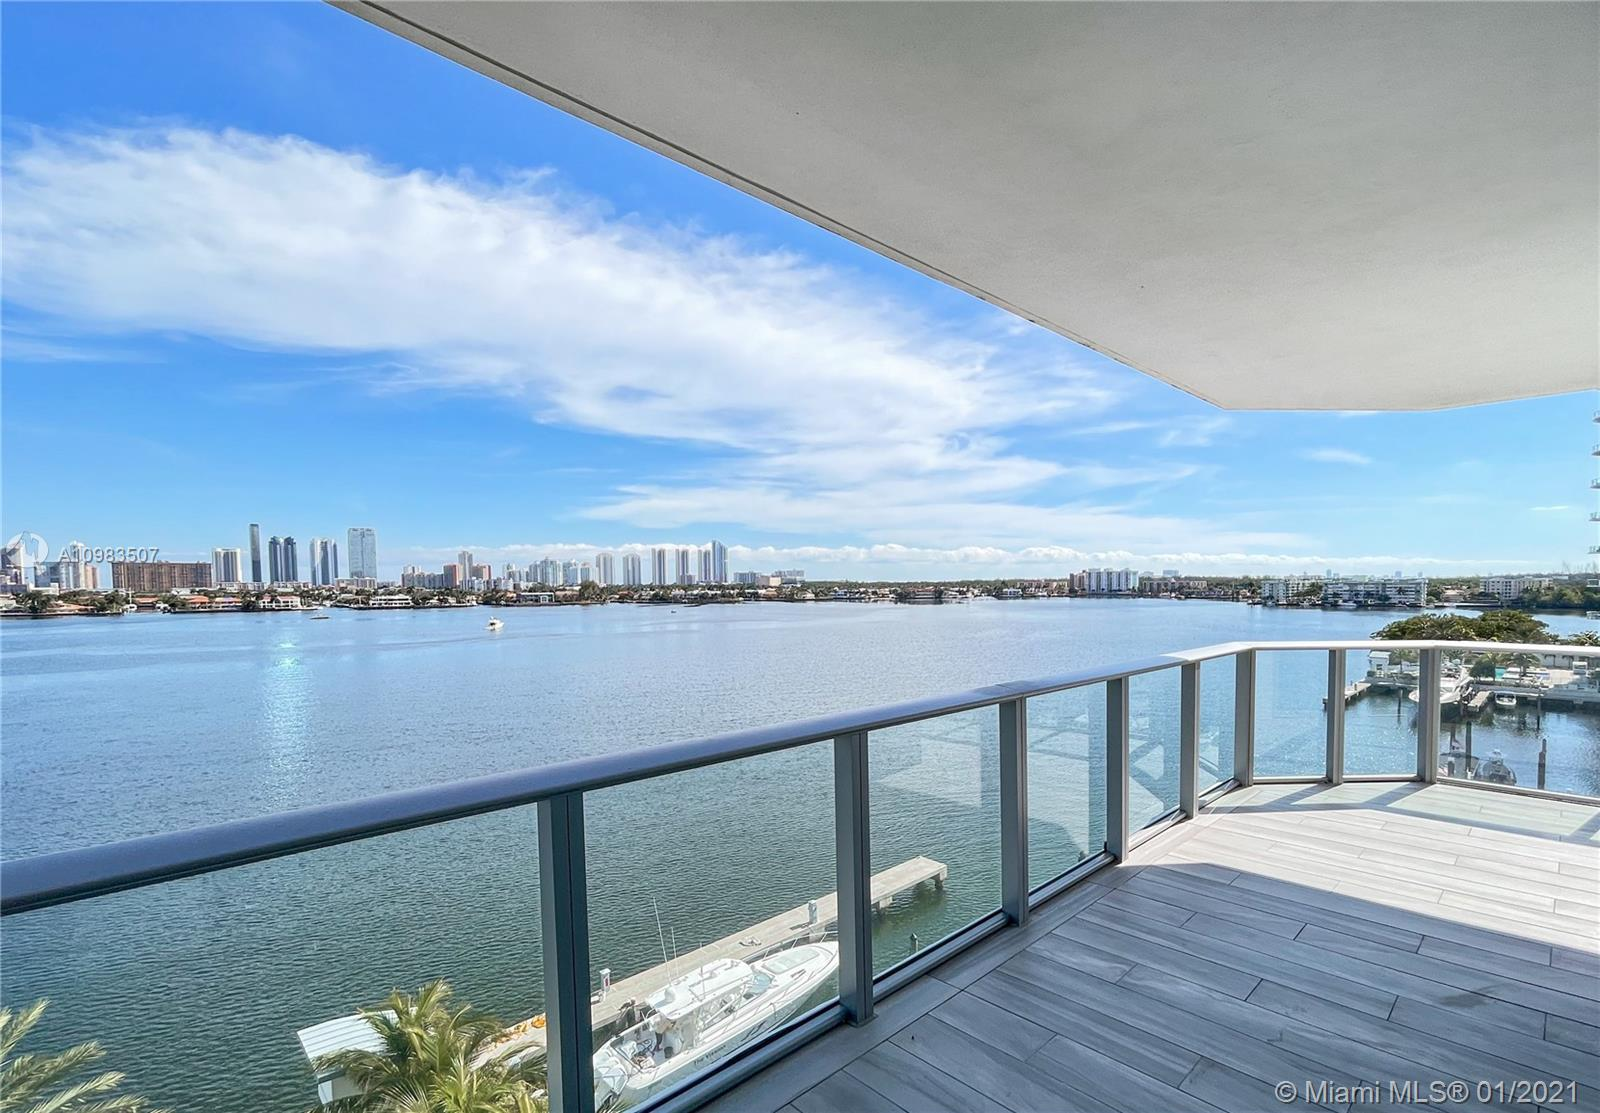 Marina Palms 2 #609 - 17301 Biscayne Blvd #609, North Miami Beach, FL 33160